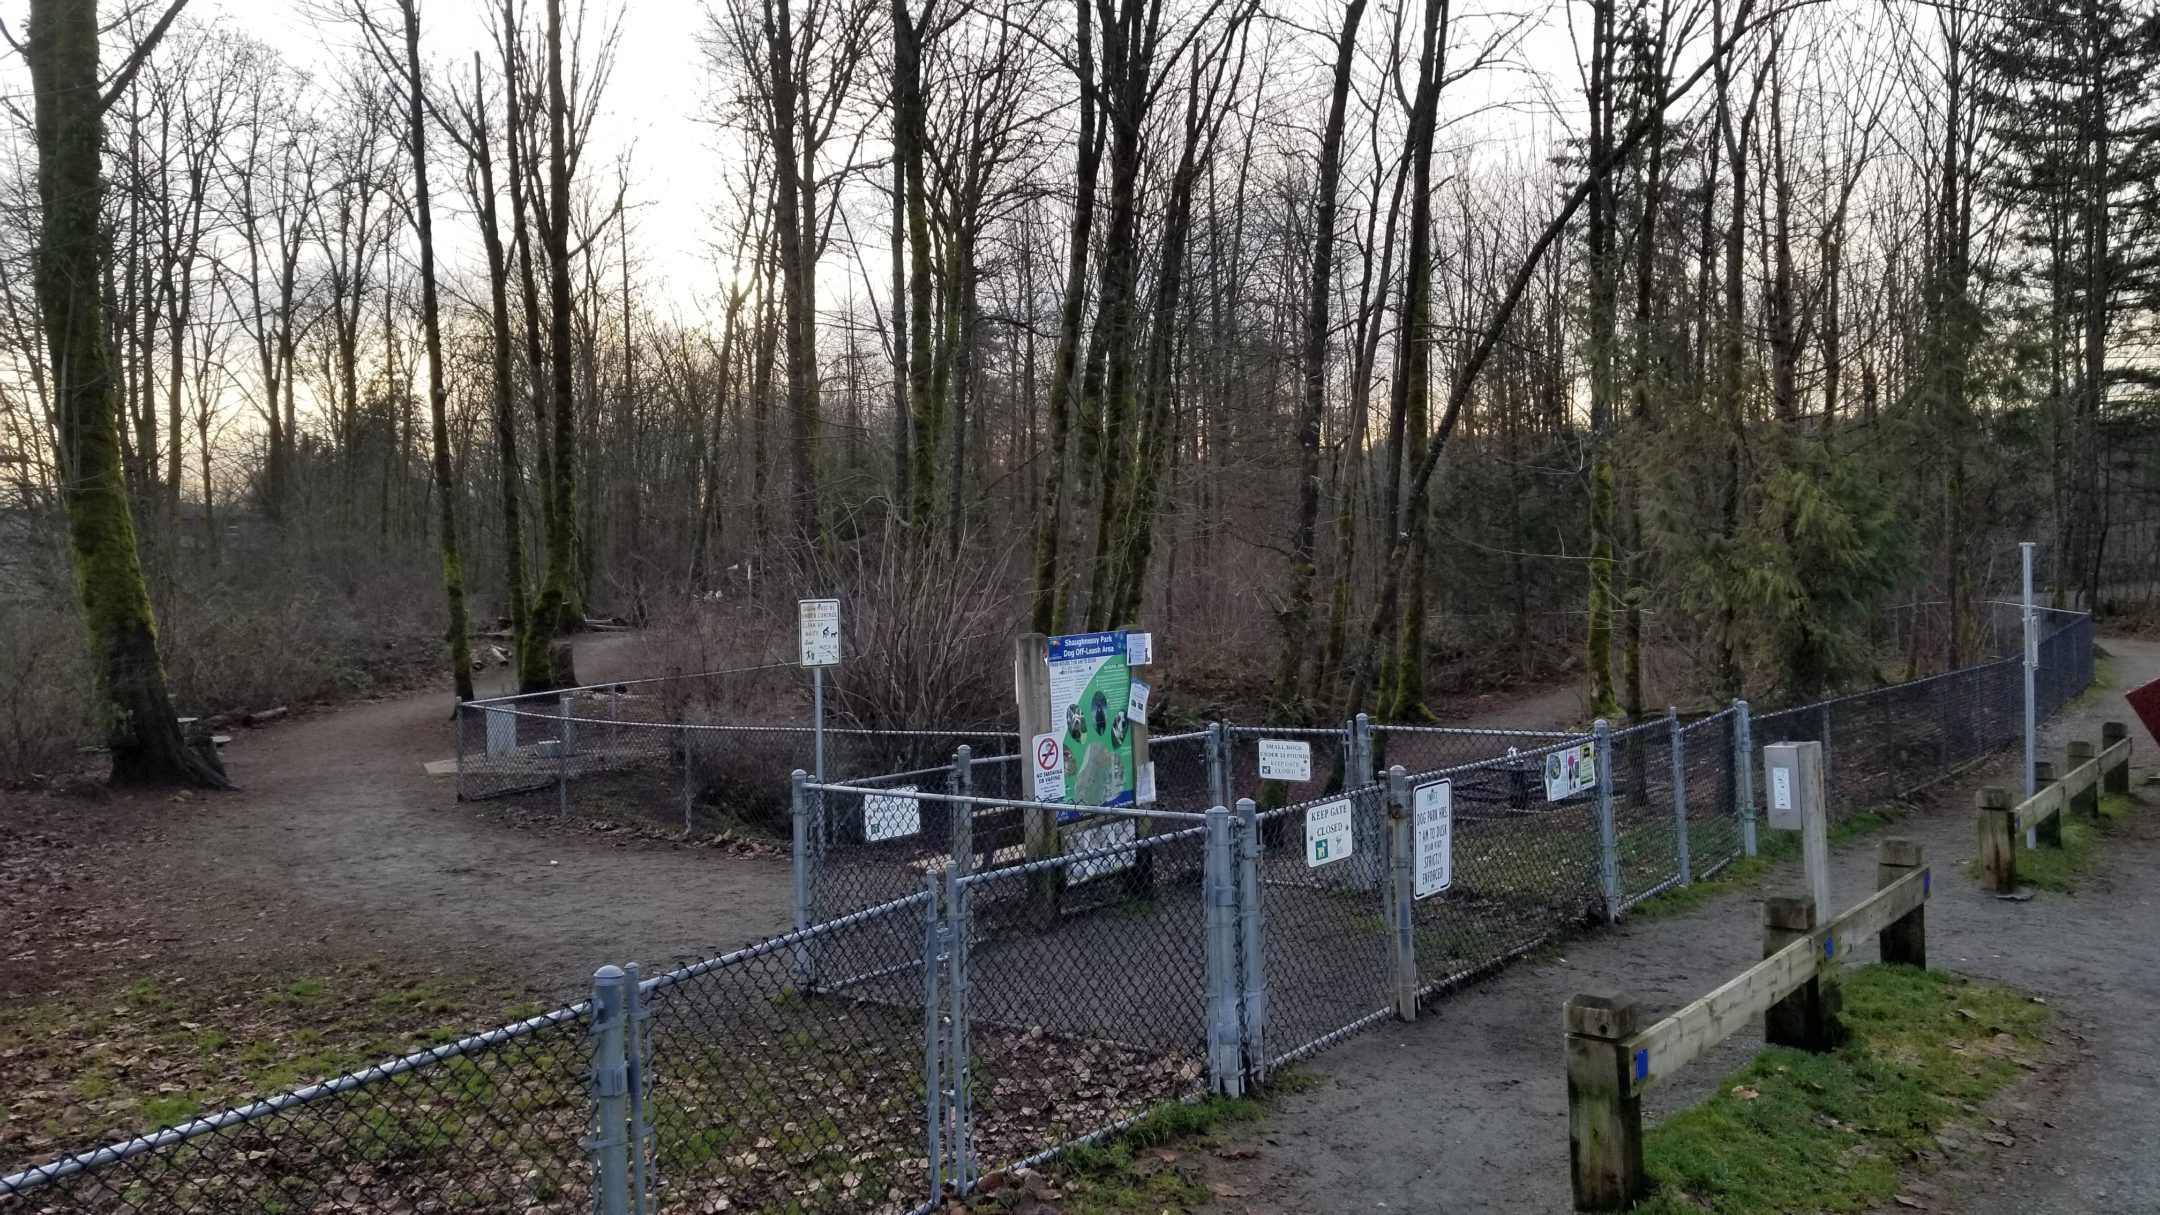 Shaughnessy Park Off-Leash Dog Park, Port Coquitlam, BC